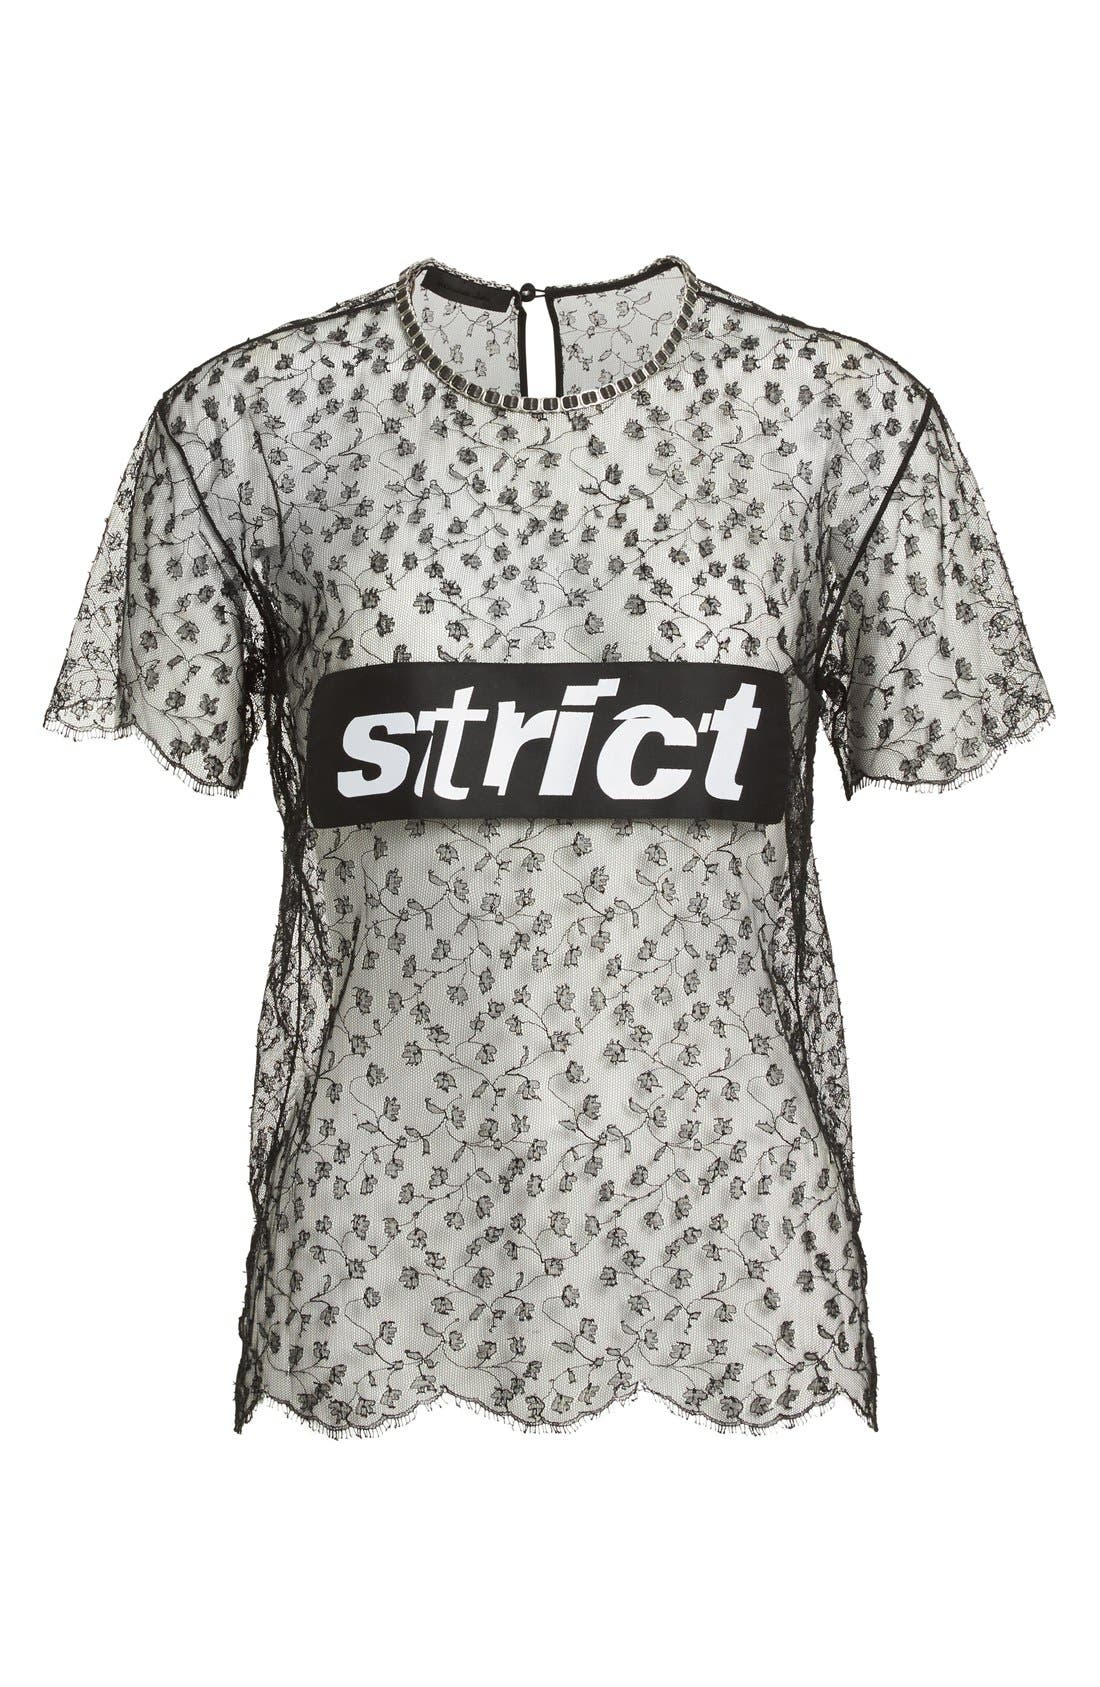 Main Image - Alexander Wang 'Strict' Lace Tee